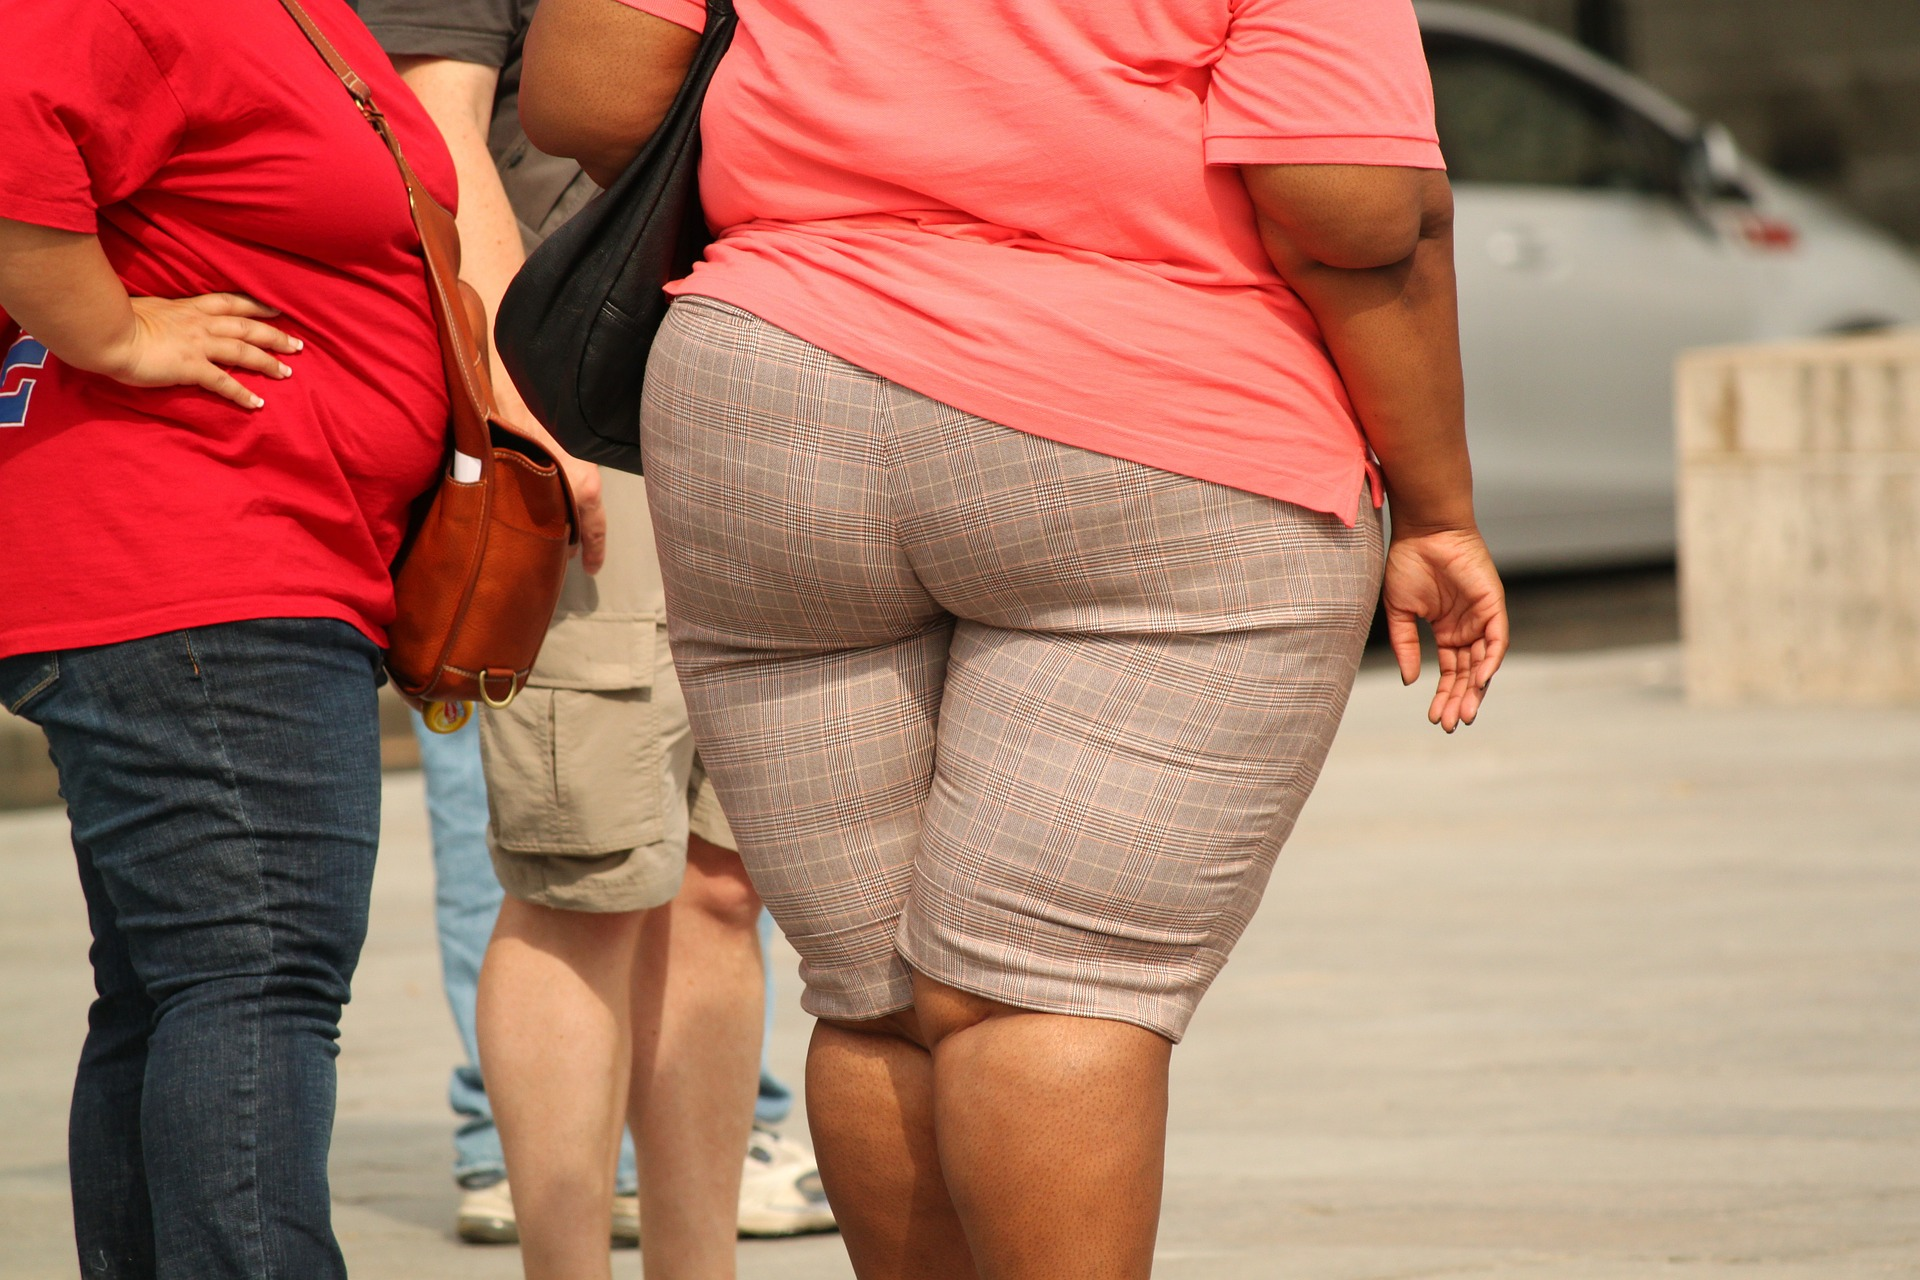 Obesity shortens your life